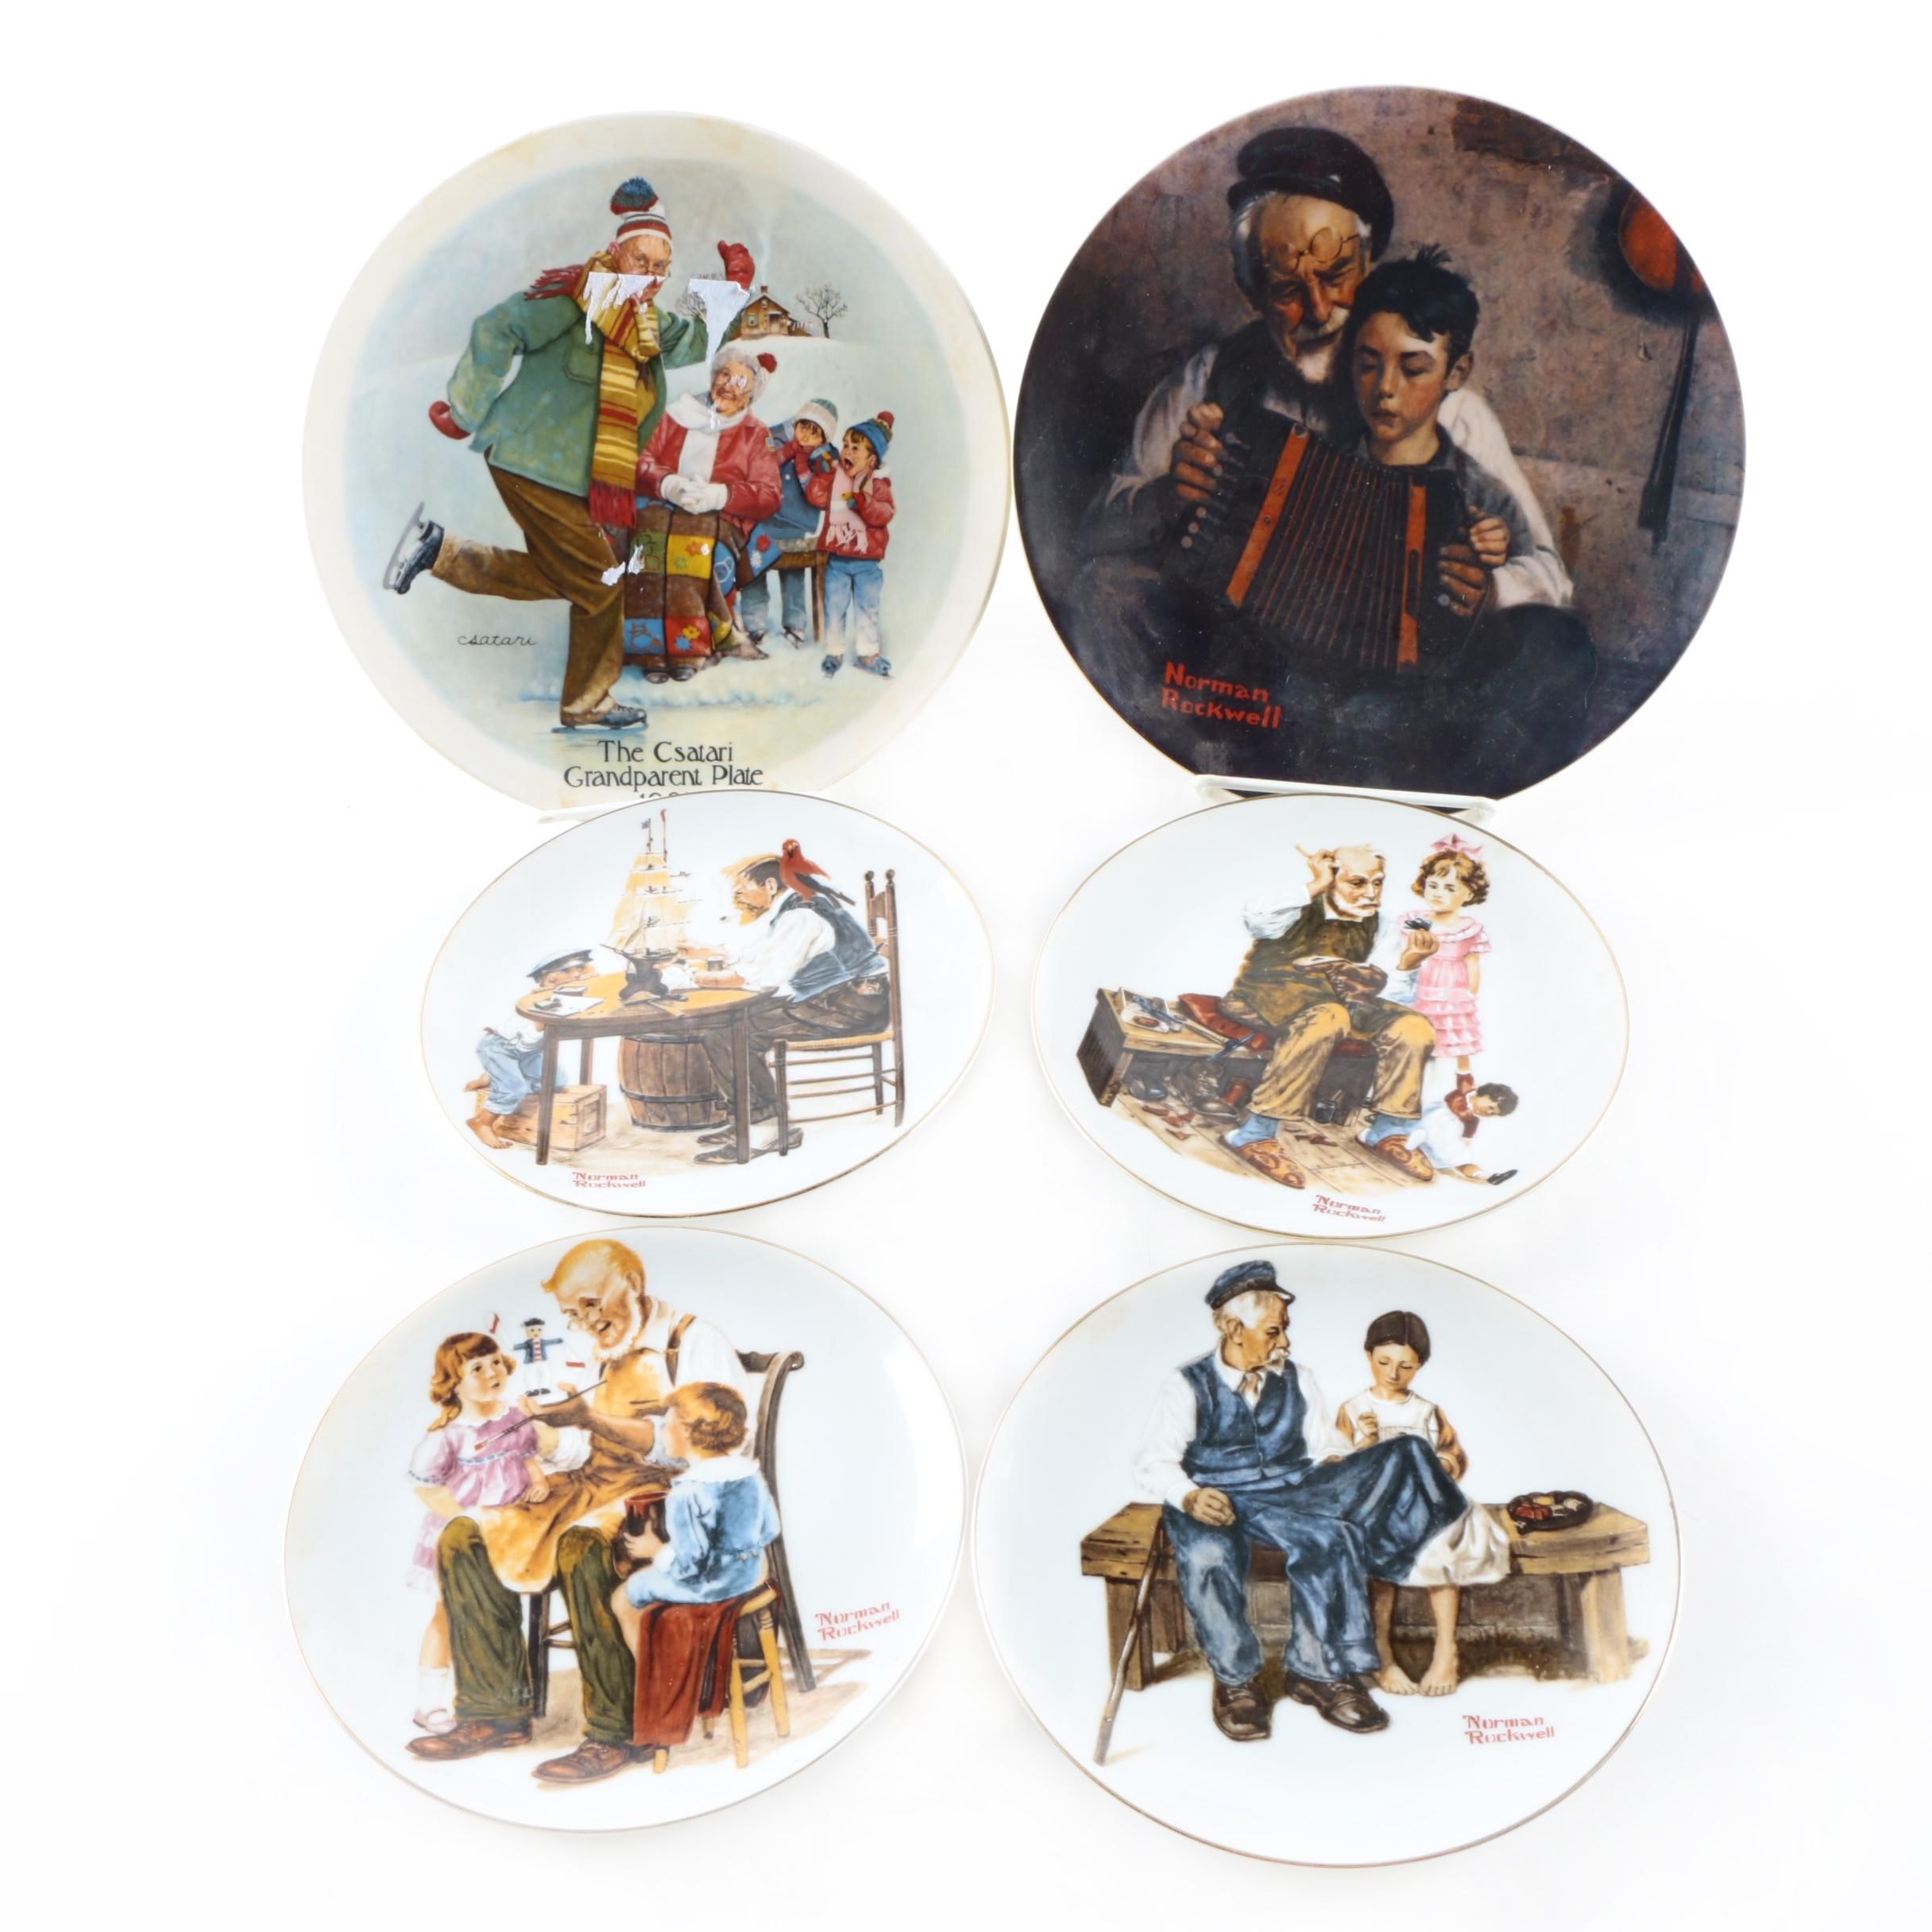 Csatari and Rockwell Artwork Decorative Plates